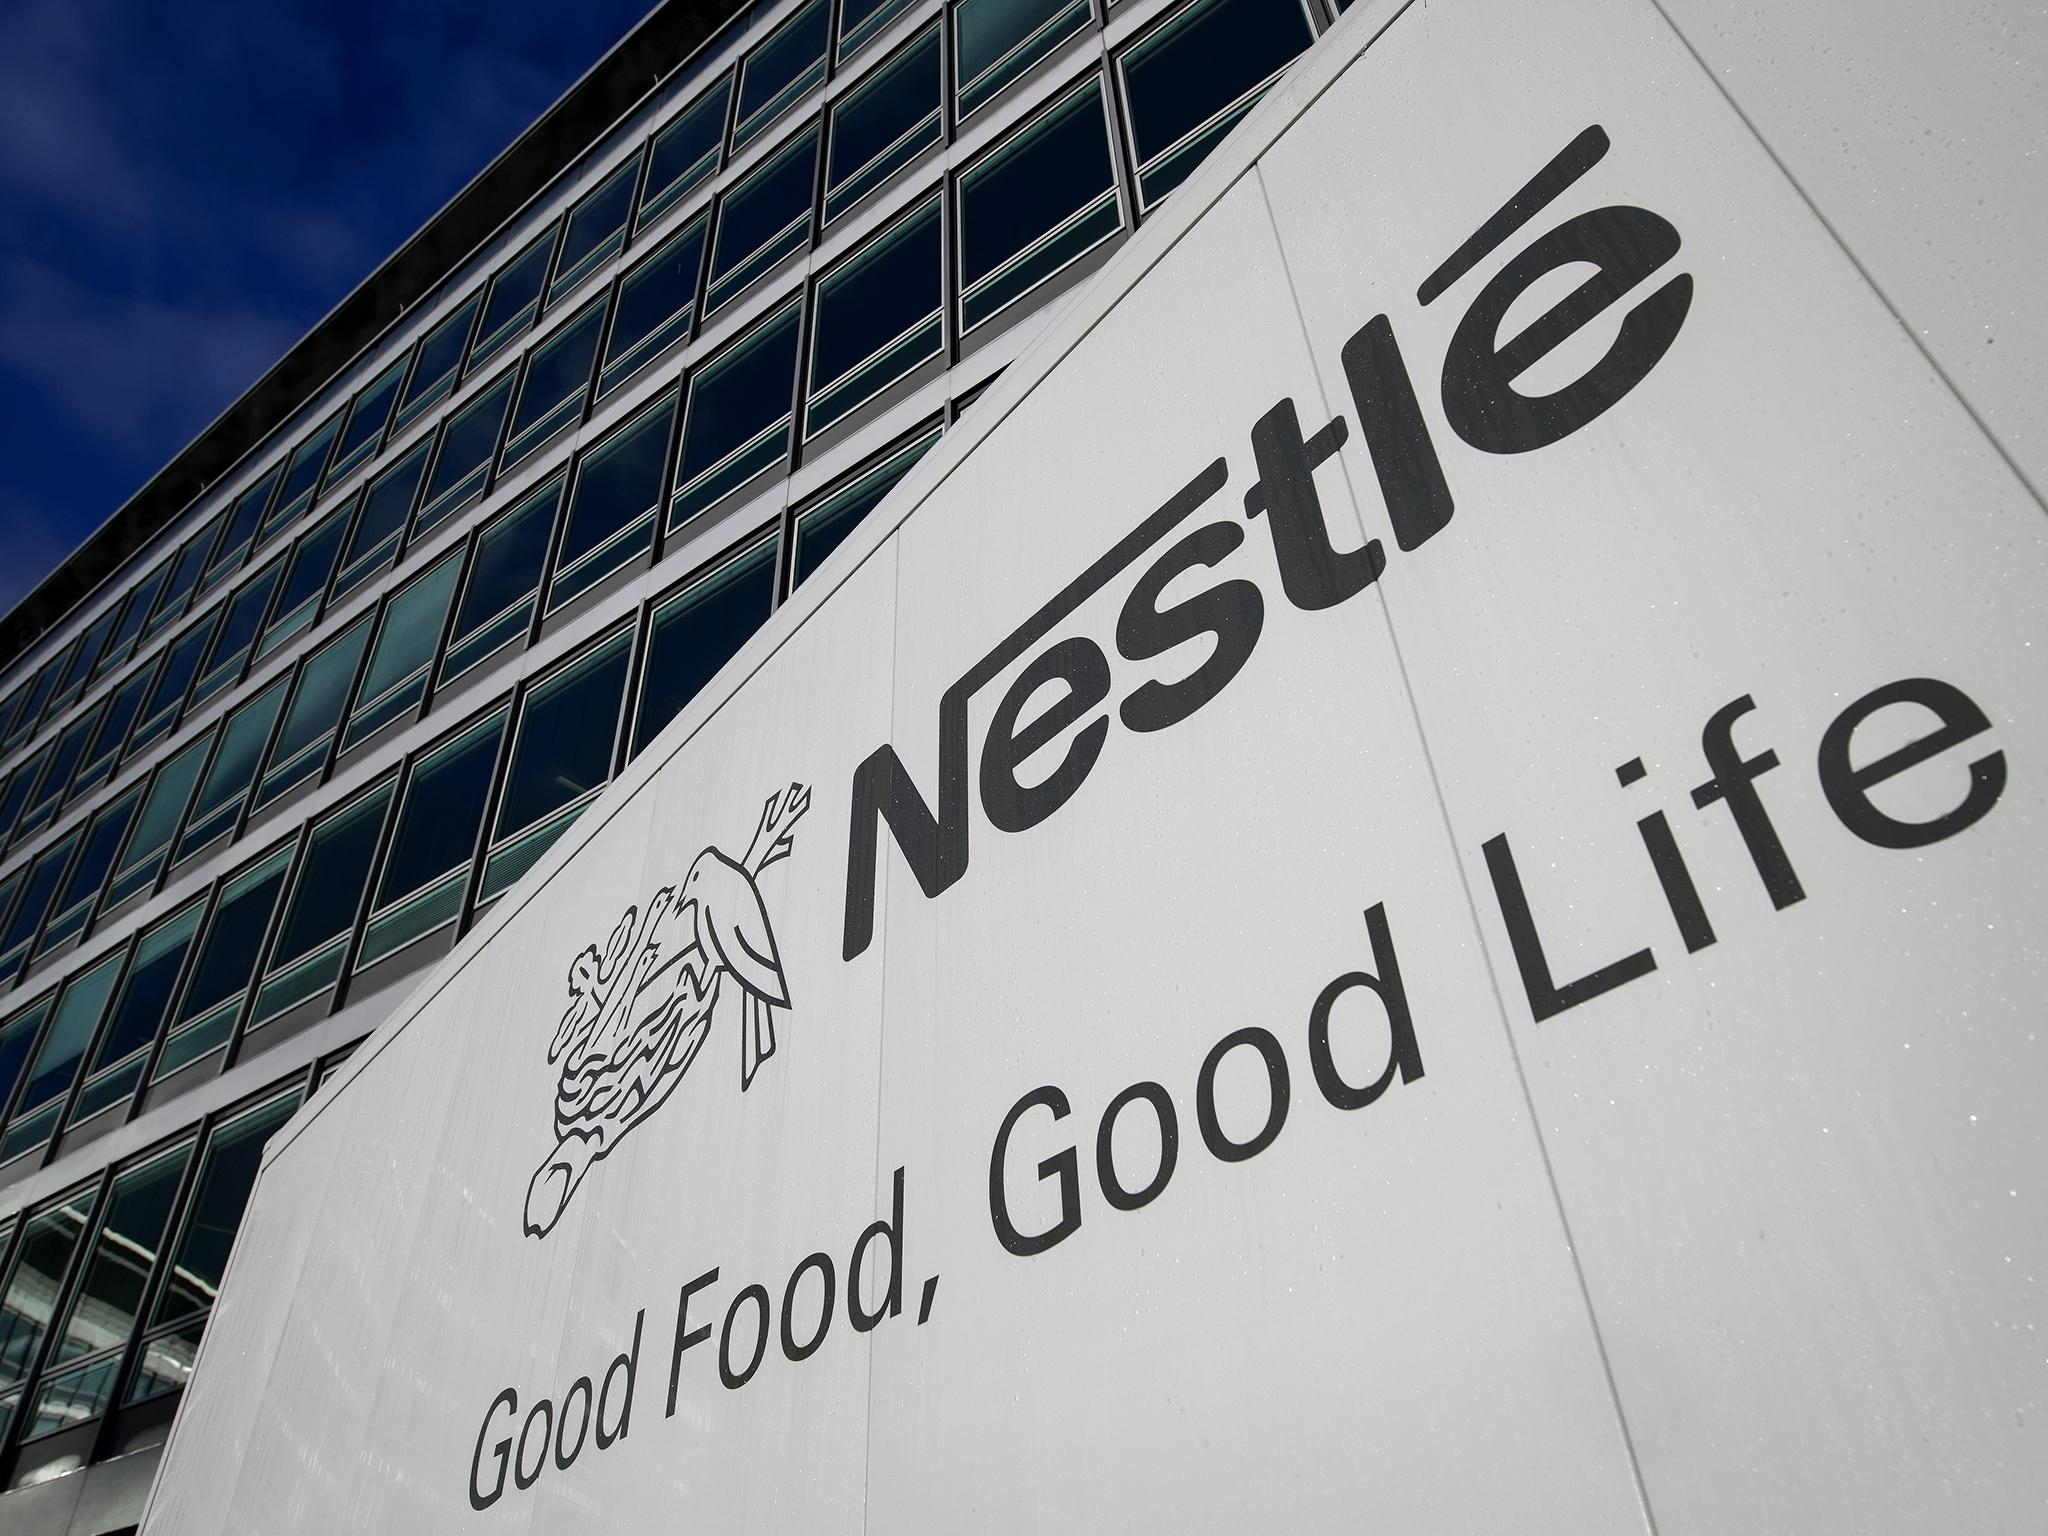 nestle company Nestlé, vevey, switzerland 11,044,276 likes 685 talking about this 70 were here nestlé is the world's largest food and beverage company it is.